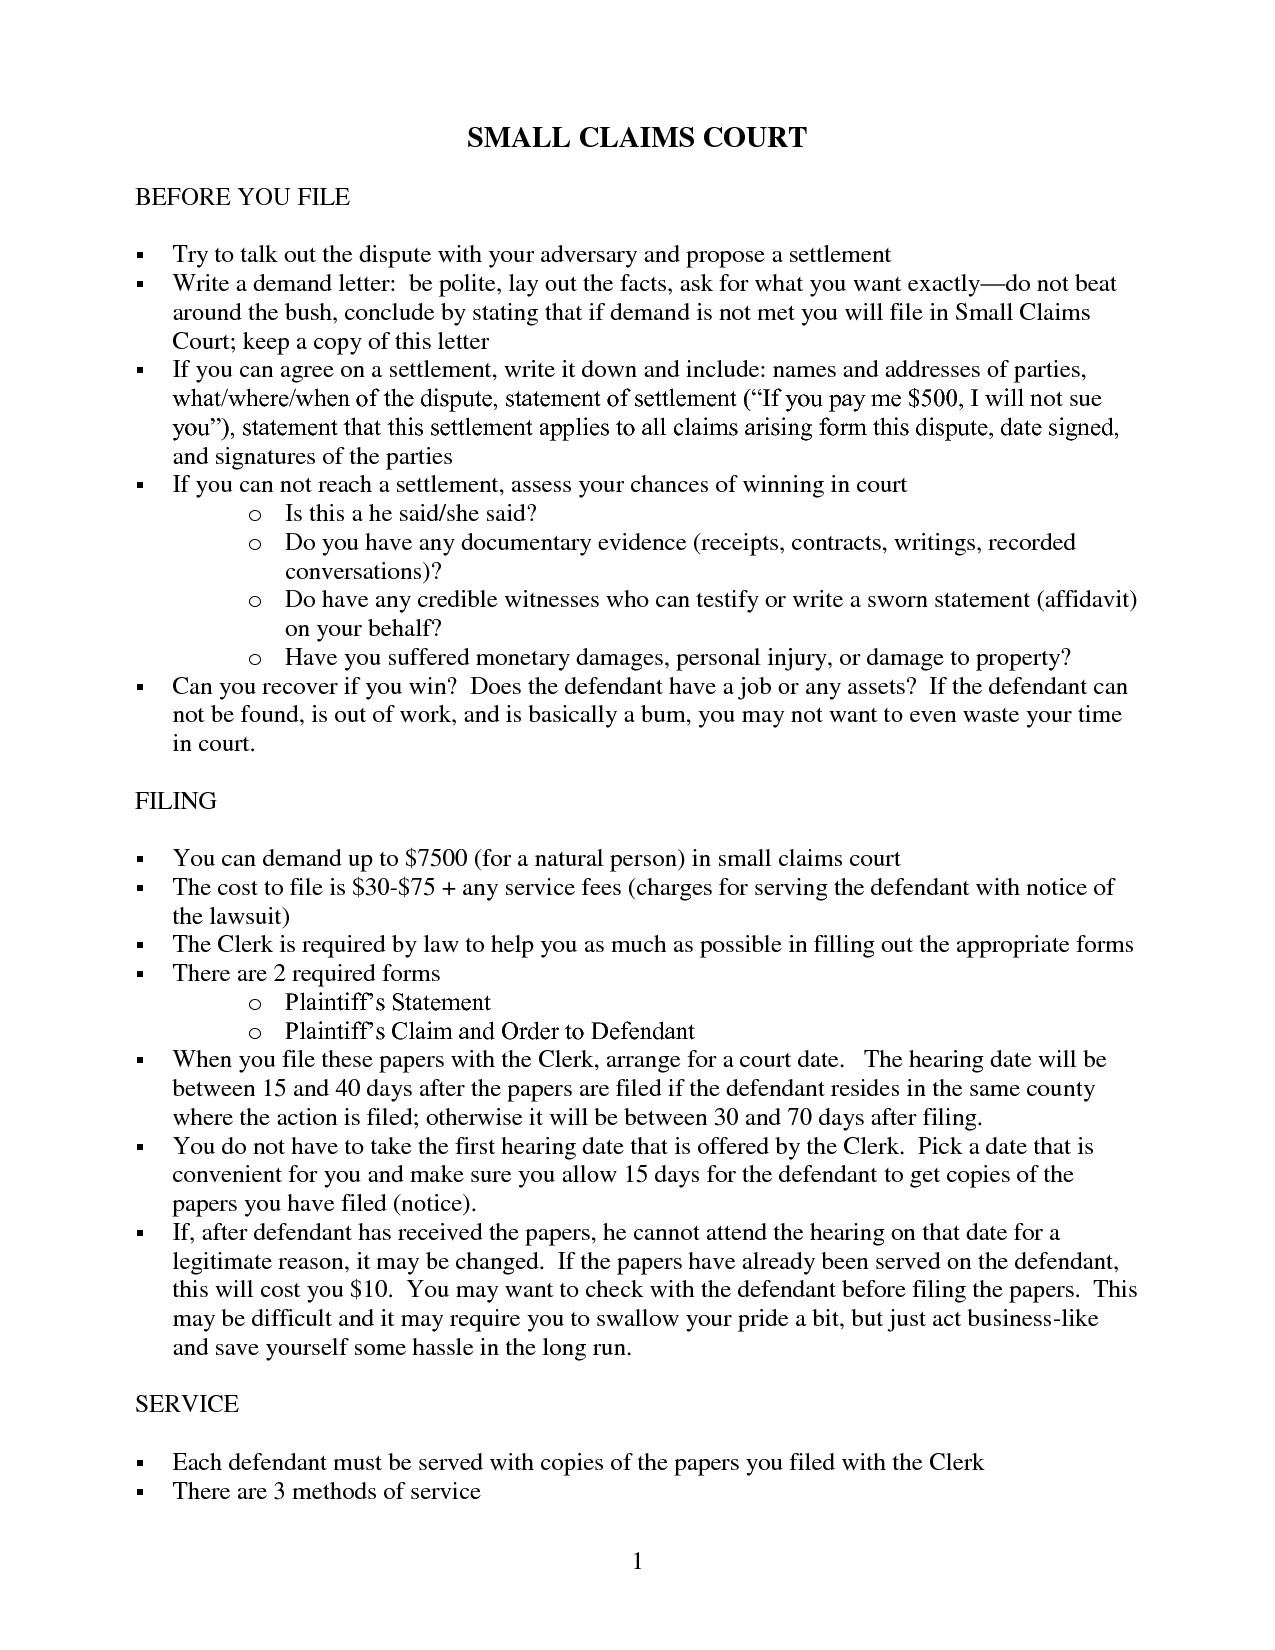 Demand Letter Car Accident Template - 31 Unique Sample Demand Letter for Car Accident